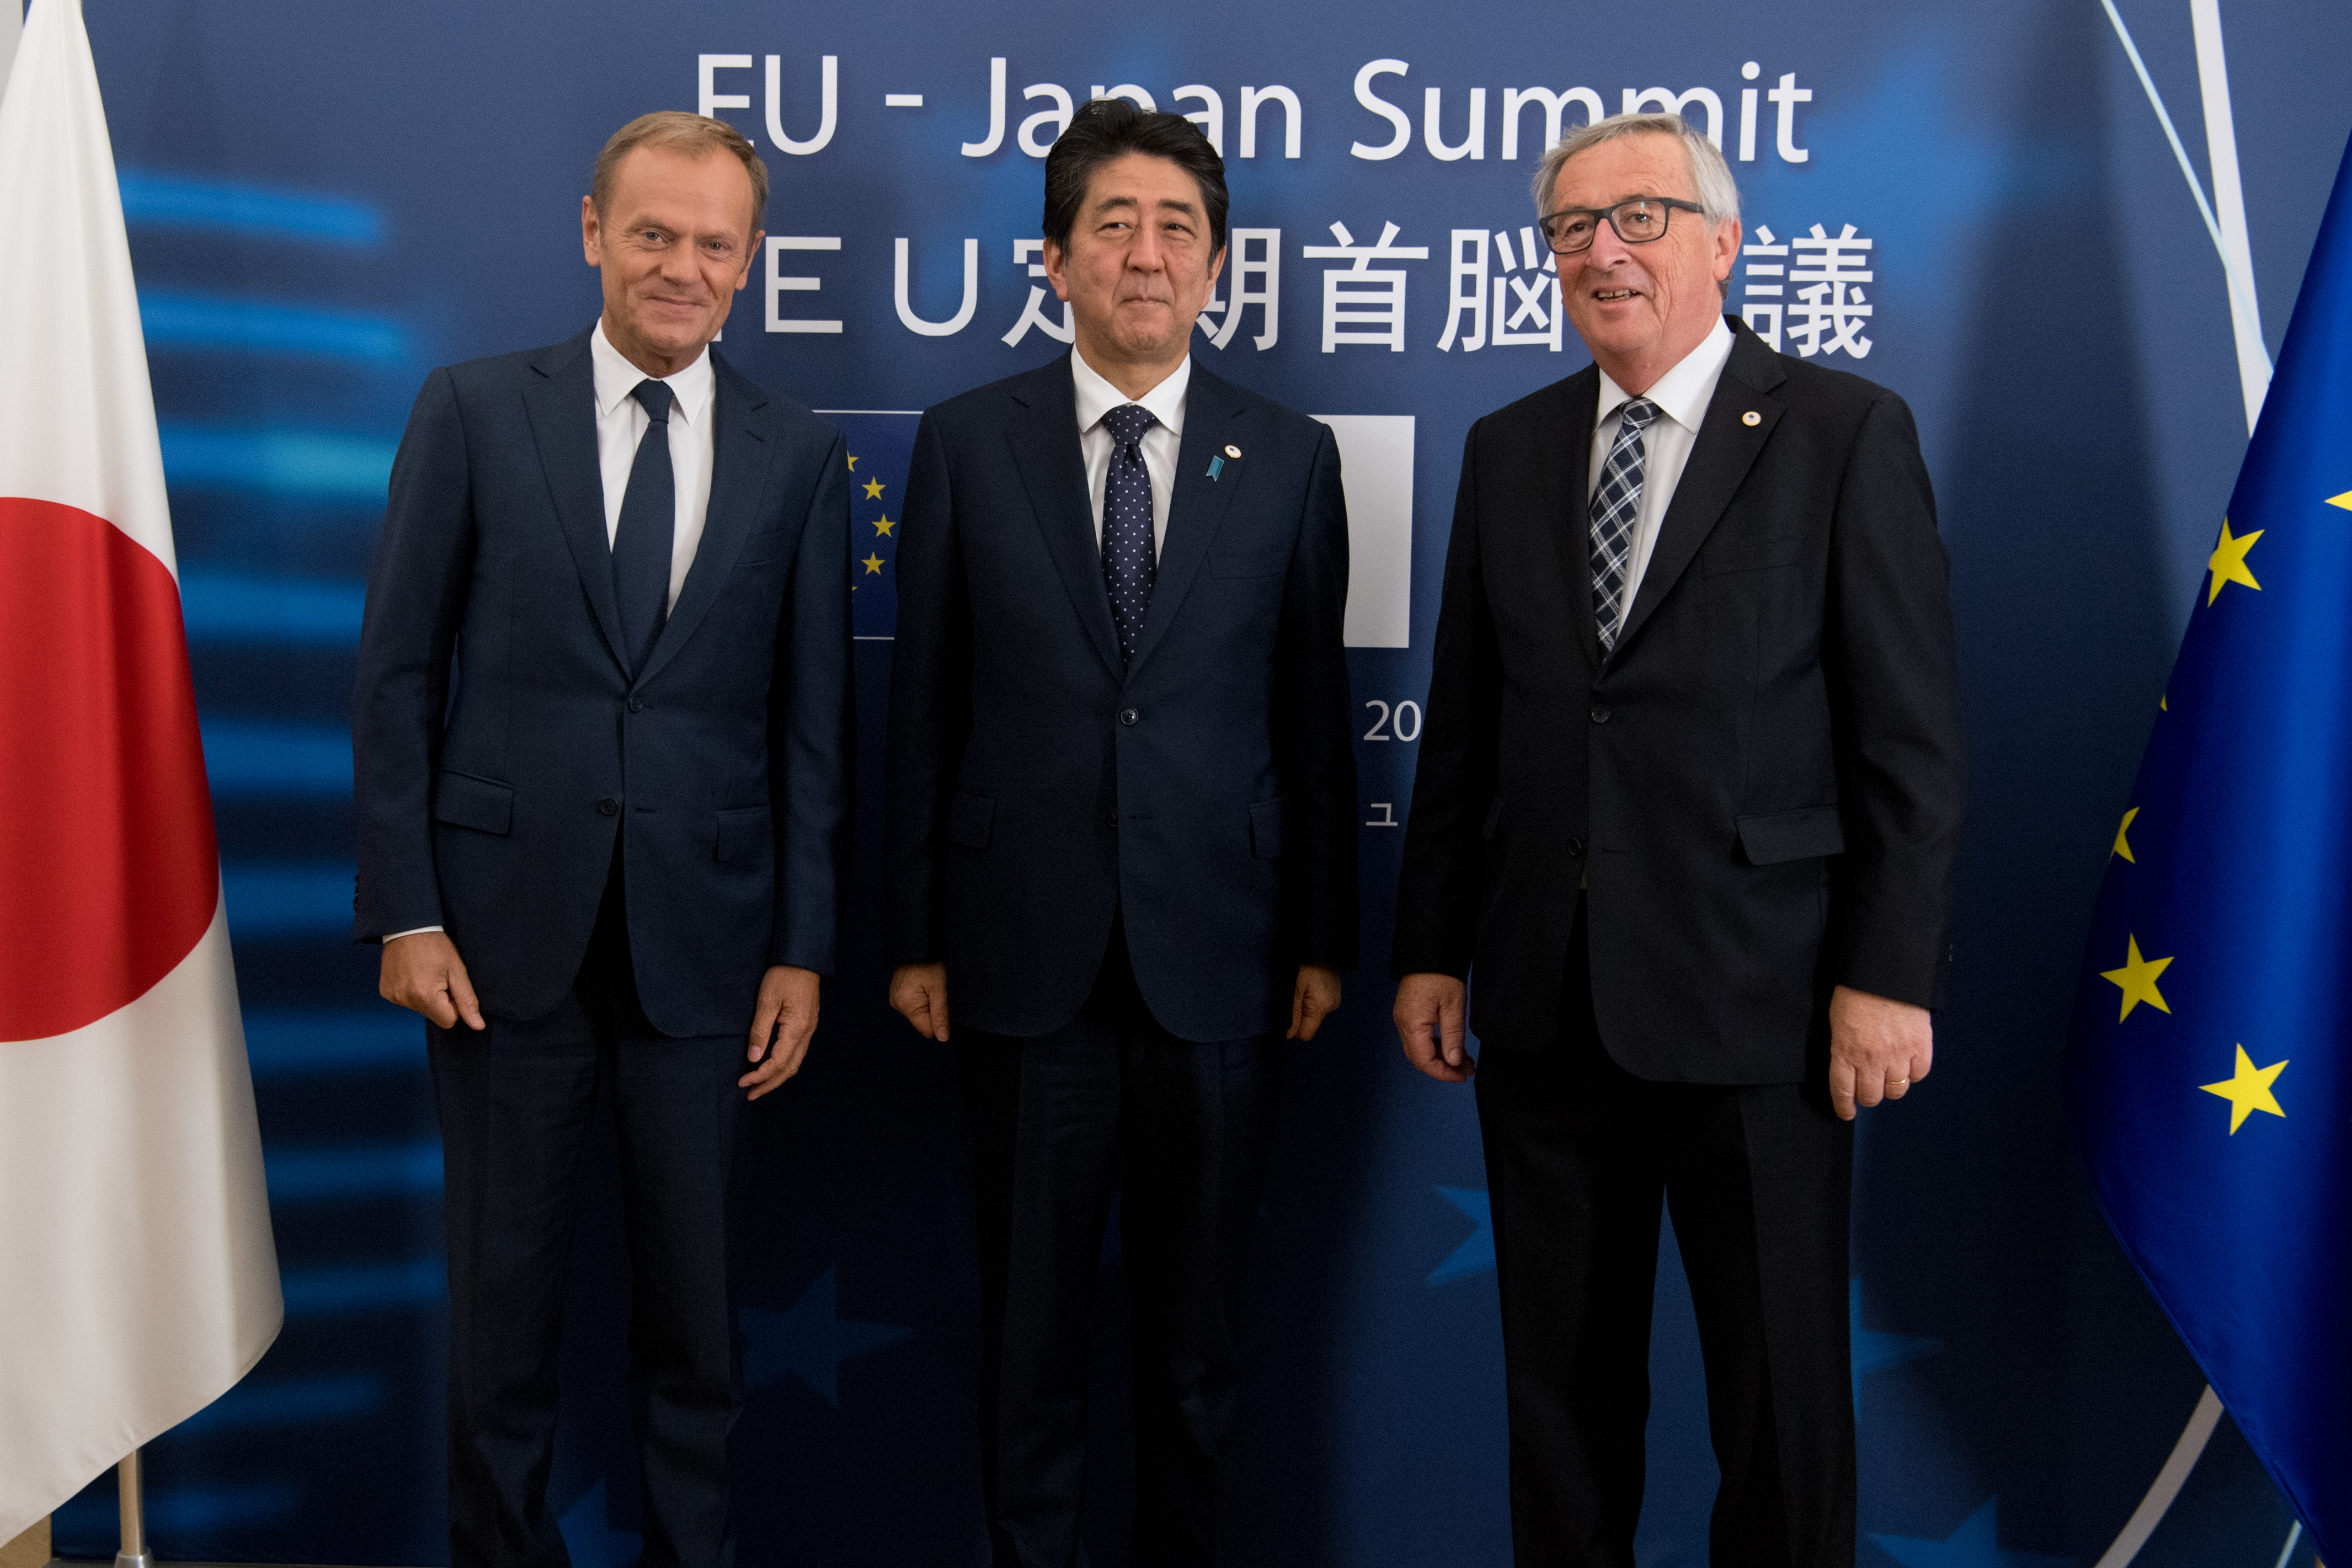 Participation of Jean-Claude Juncker, President of the EC, Donald Tusk, President of the European Council and Shinzō Abe, Japanese Prime Minister at the EU-Japan Summit